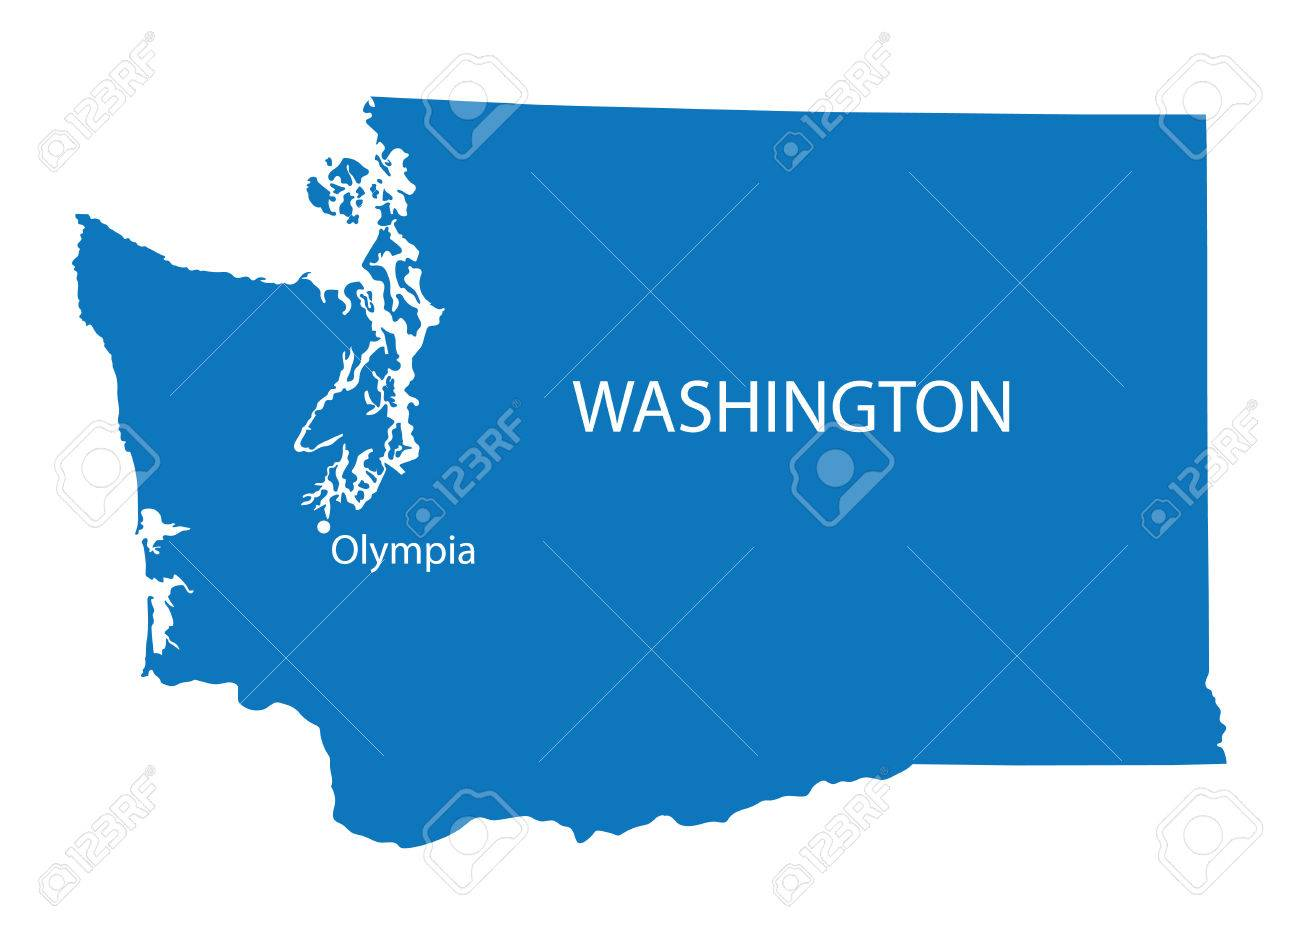 Blue Map Of Washington With Indication Of Olympia Royalty Free ...